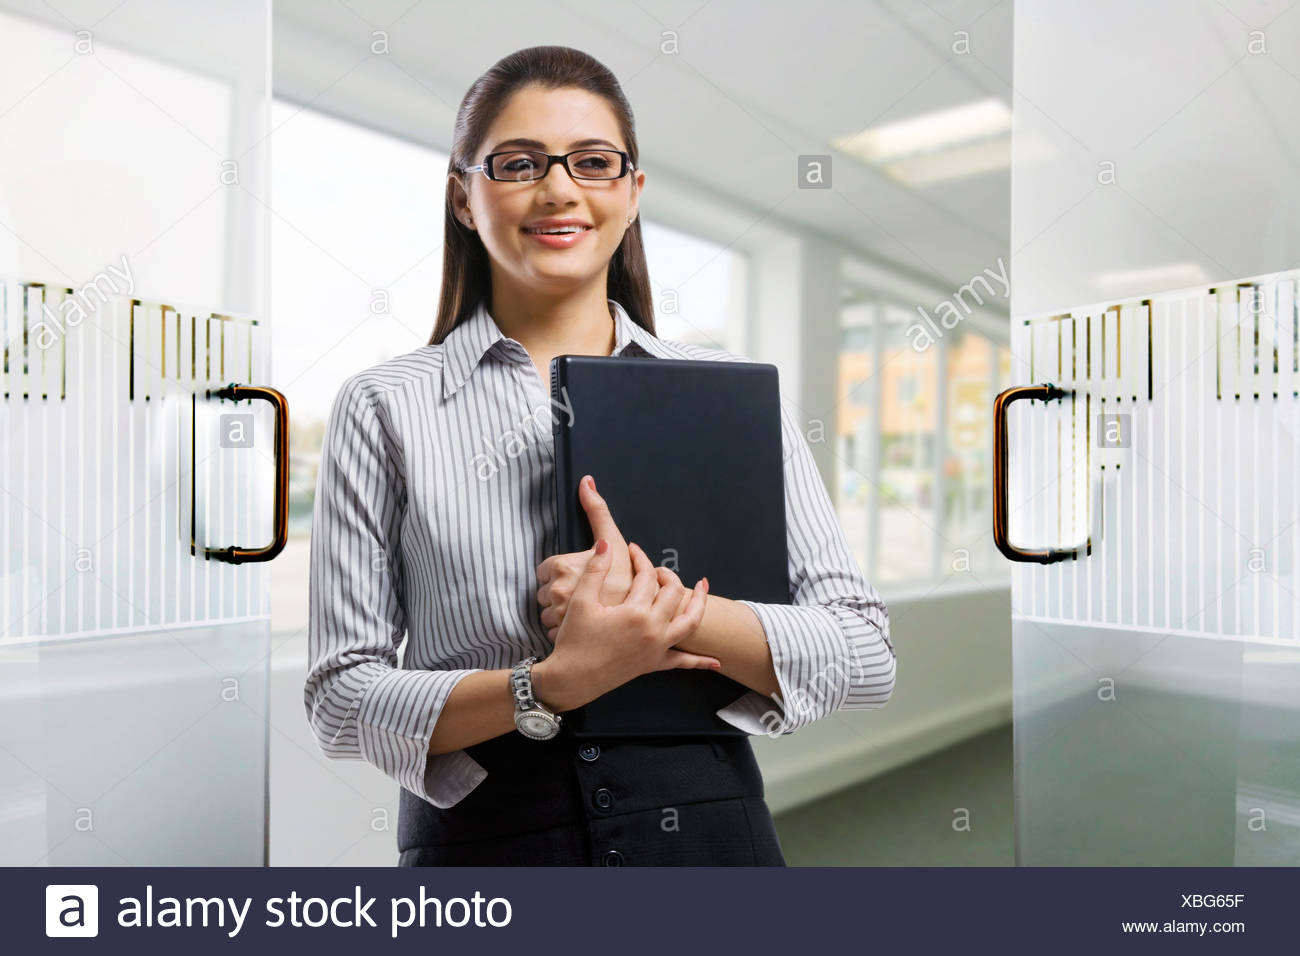 Secretary holding a laptop in the office - Stock Image